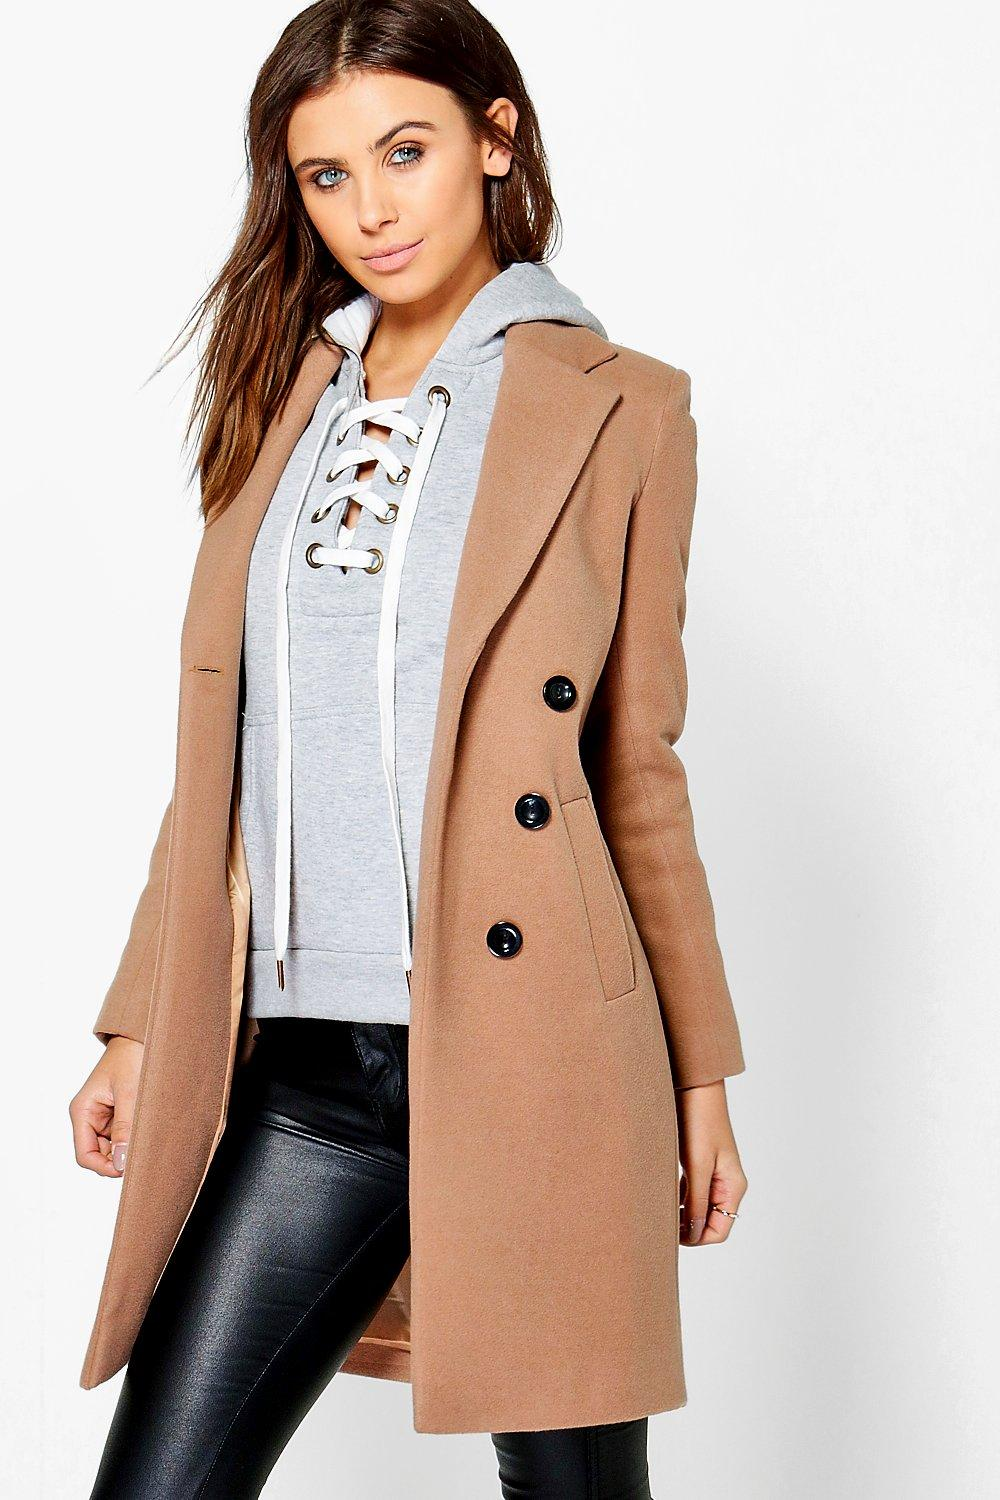 Petite Fatih Double Breasted Camel Duster Coat | Boohoo